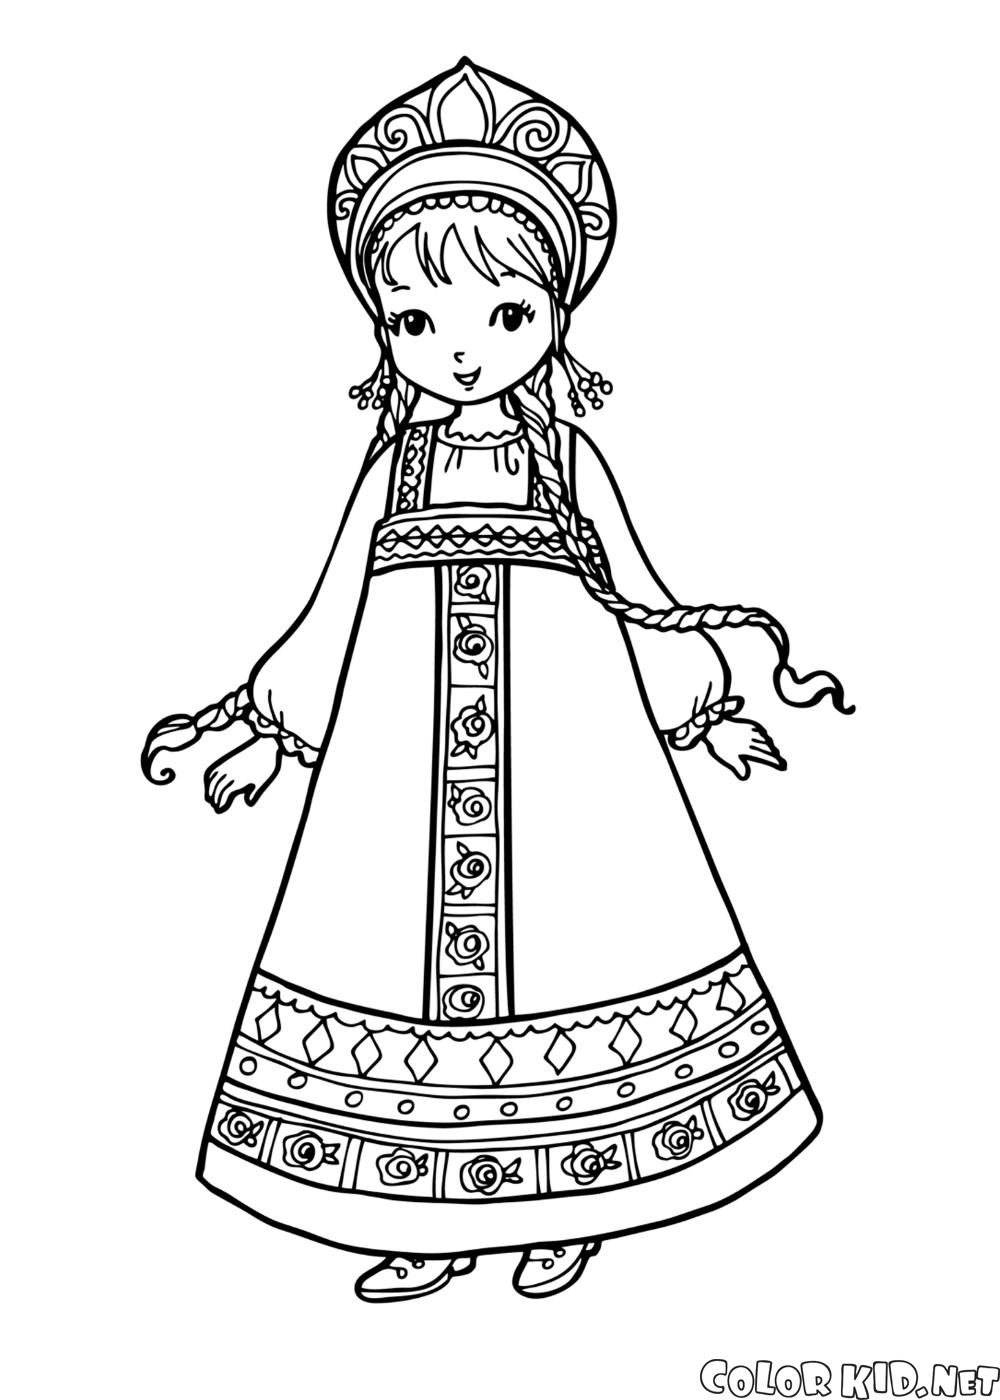 russian folk art coloring pages - photo#34